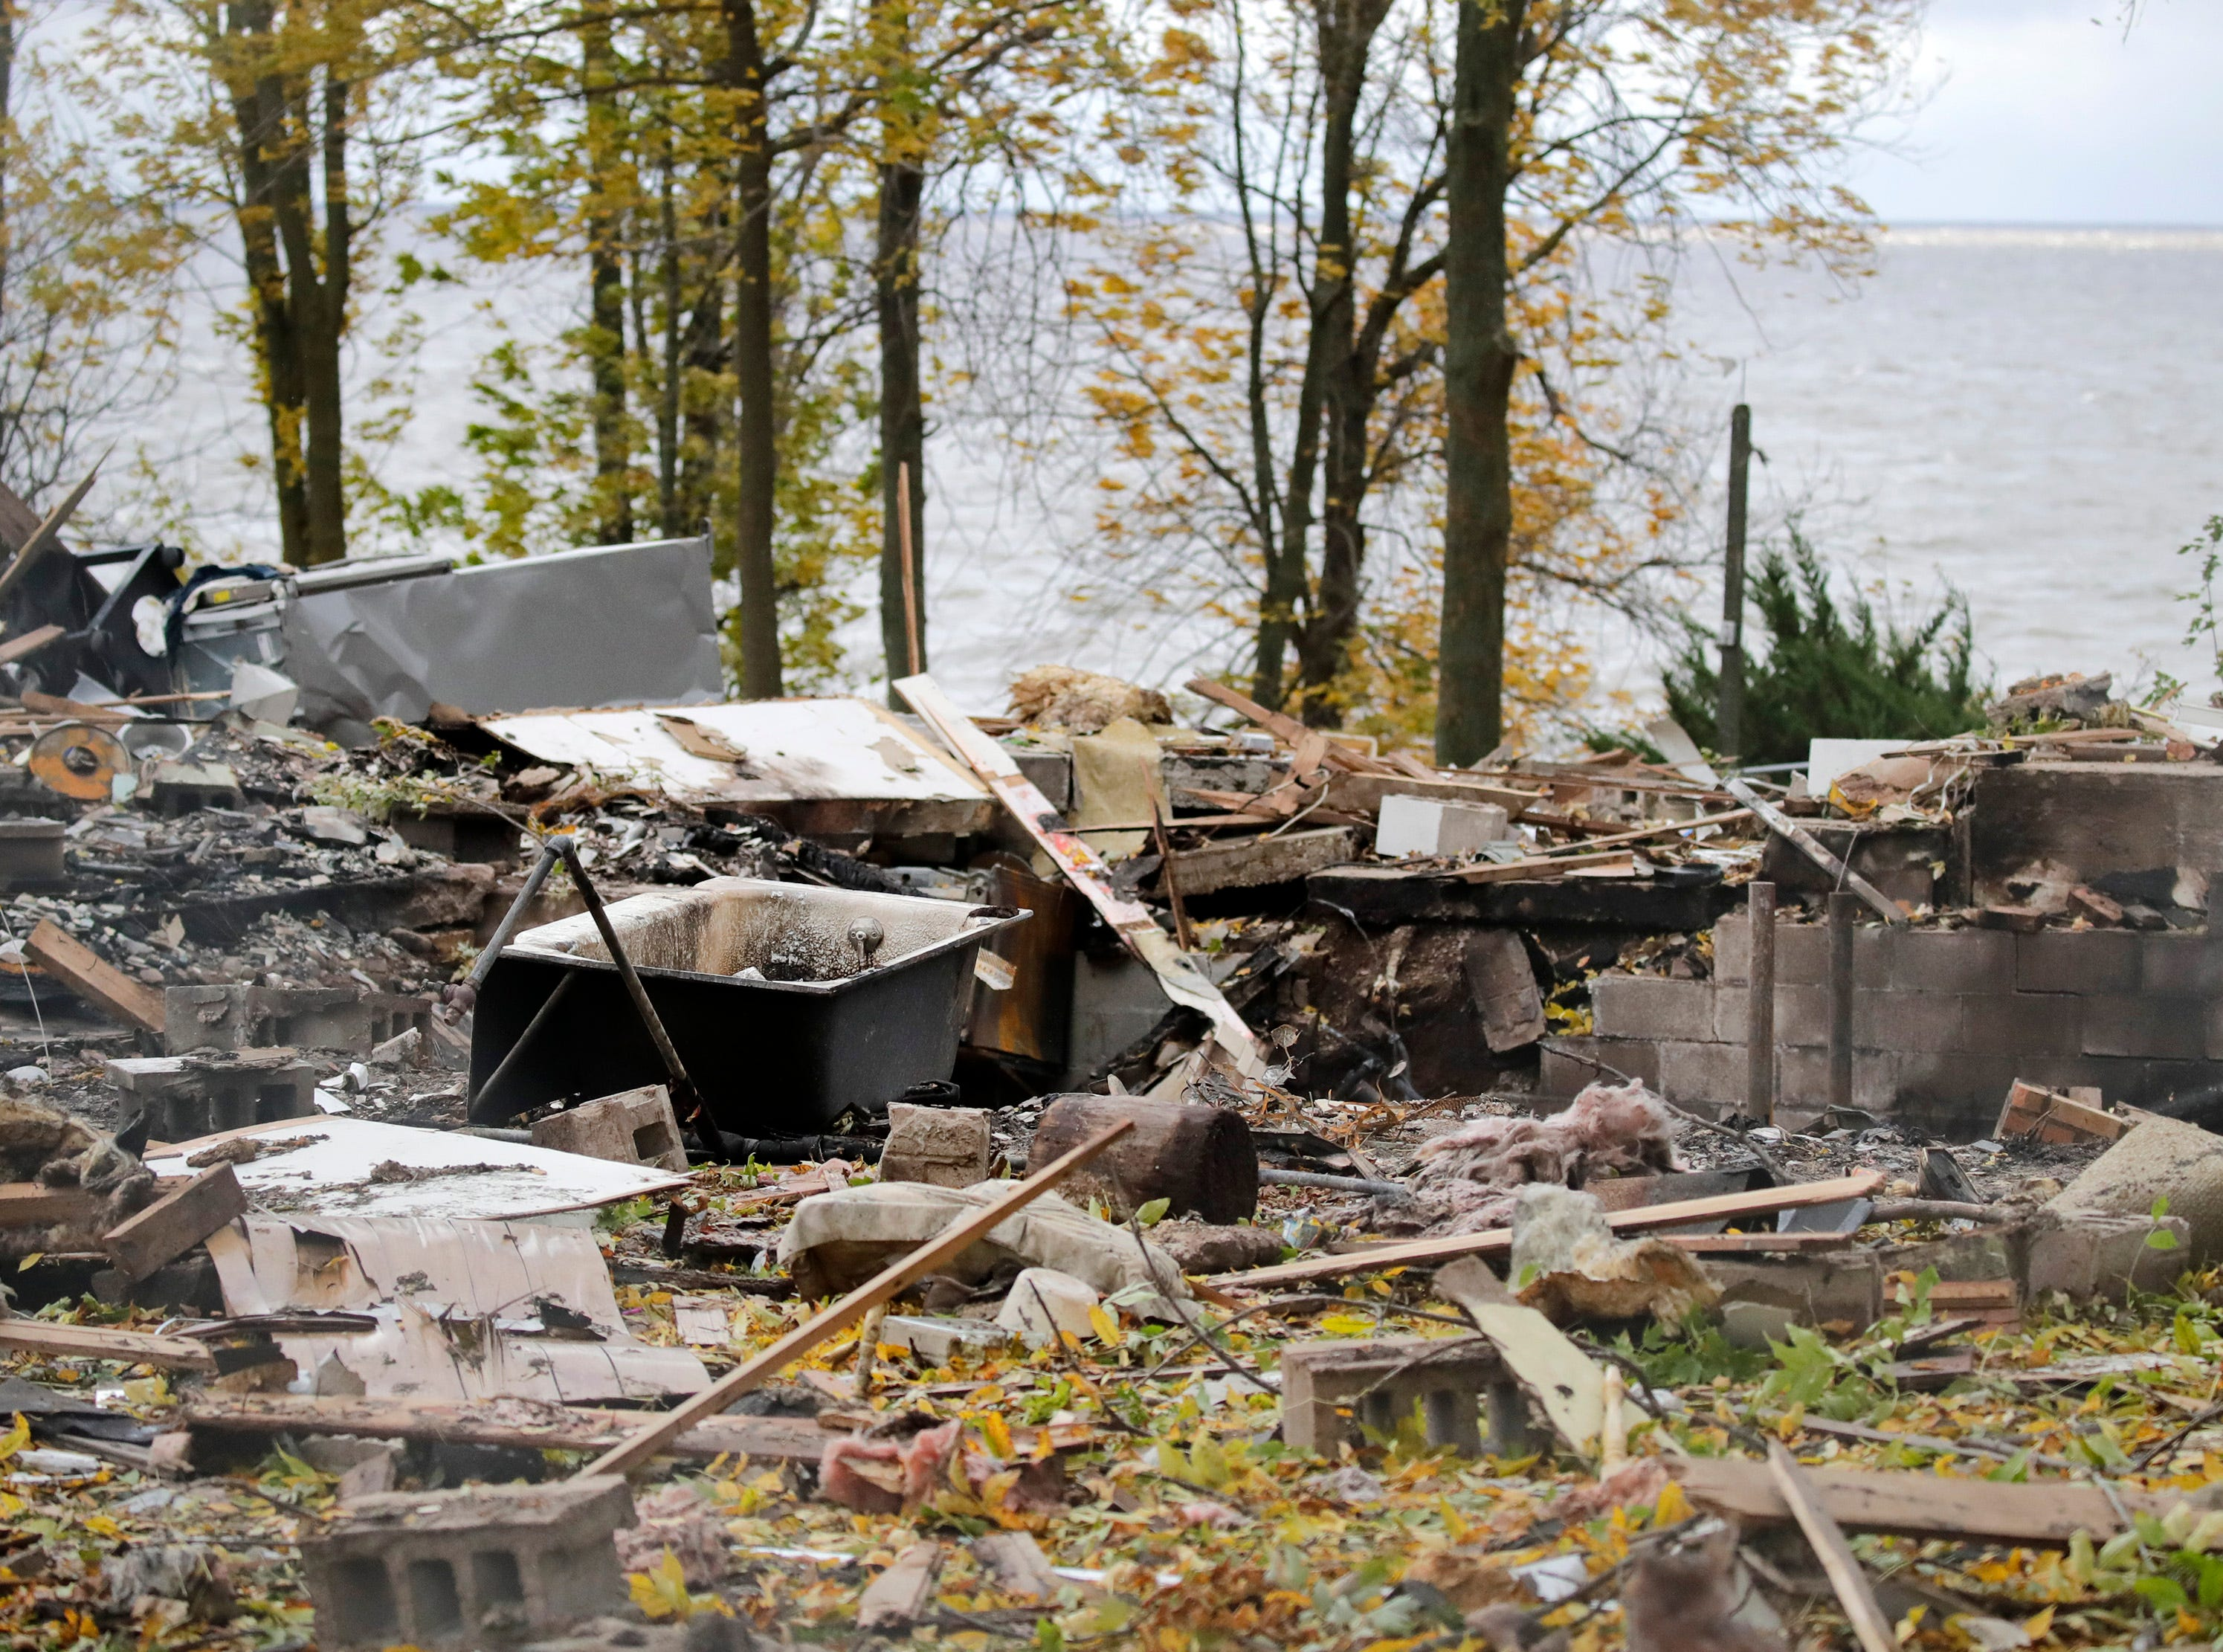 Debris lay scattered from what is left of the property at W5639 Firelane 12 after an explosion destroyed the home Thursday, Oct. 11, 2018, in Harrison, Wis.